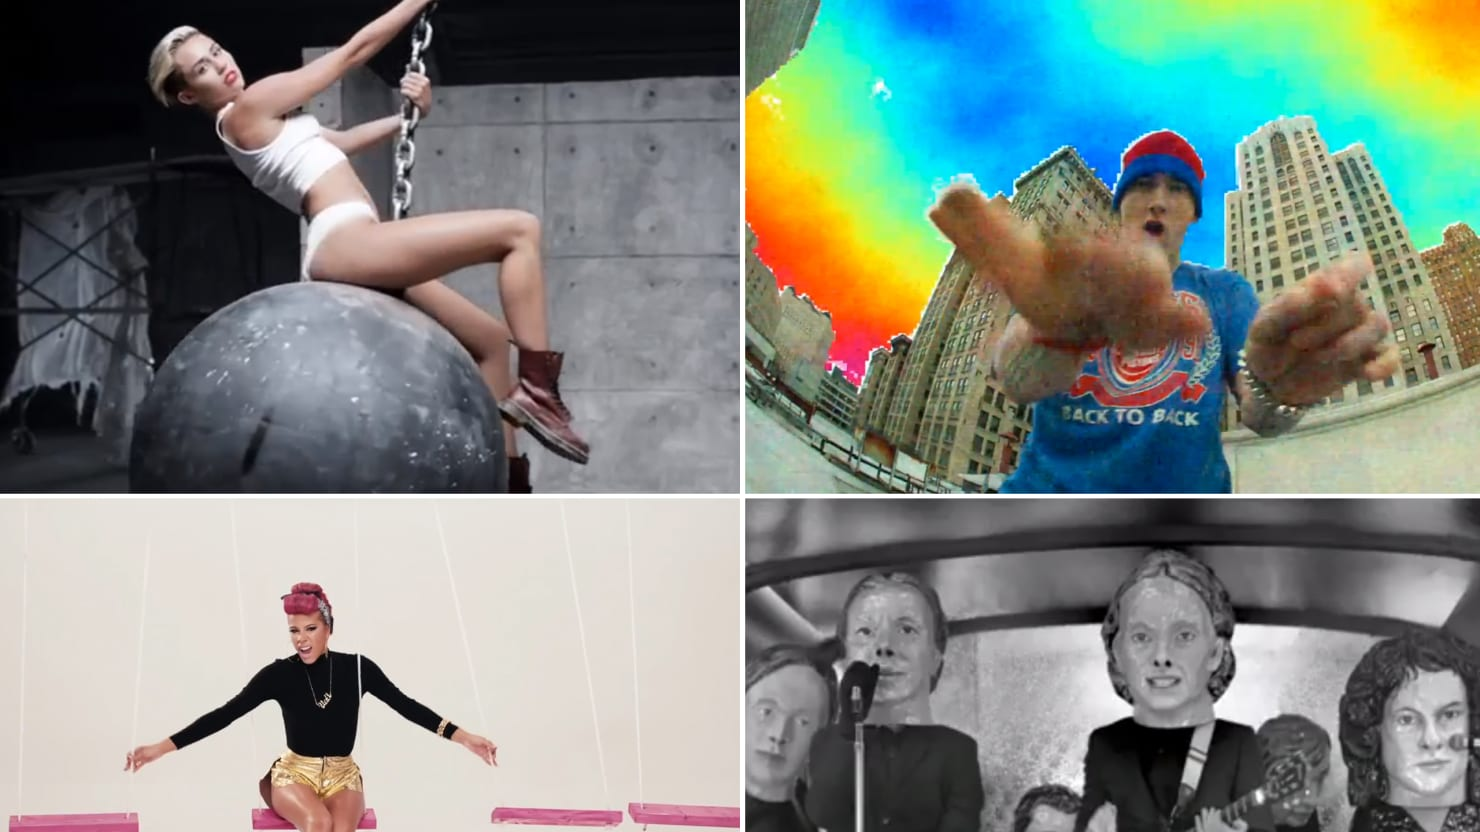 Miley Cyrus, Arcade Fire & More Best Music Videos of the Week (VIDEO)